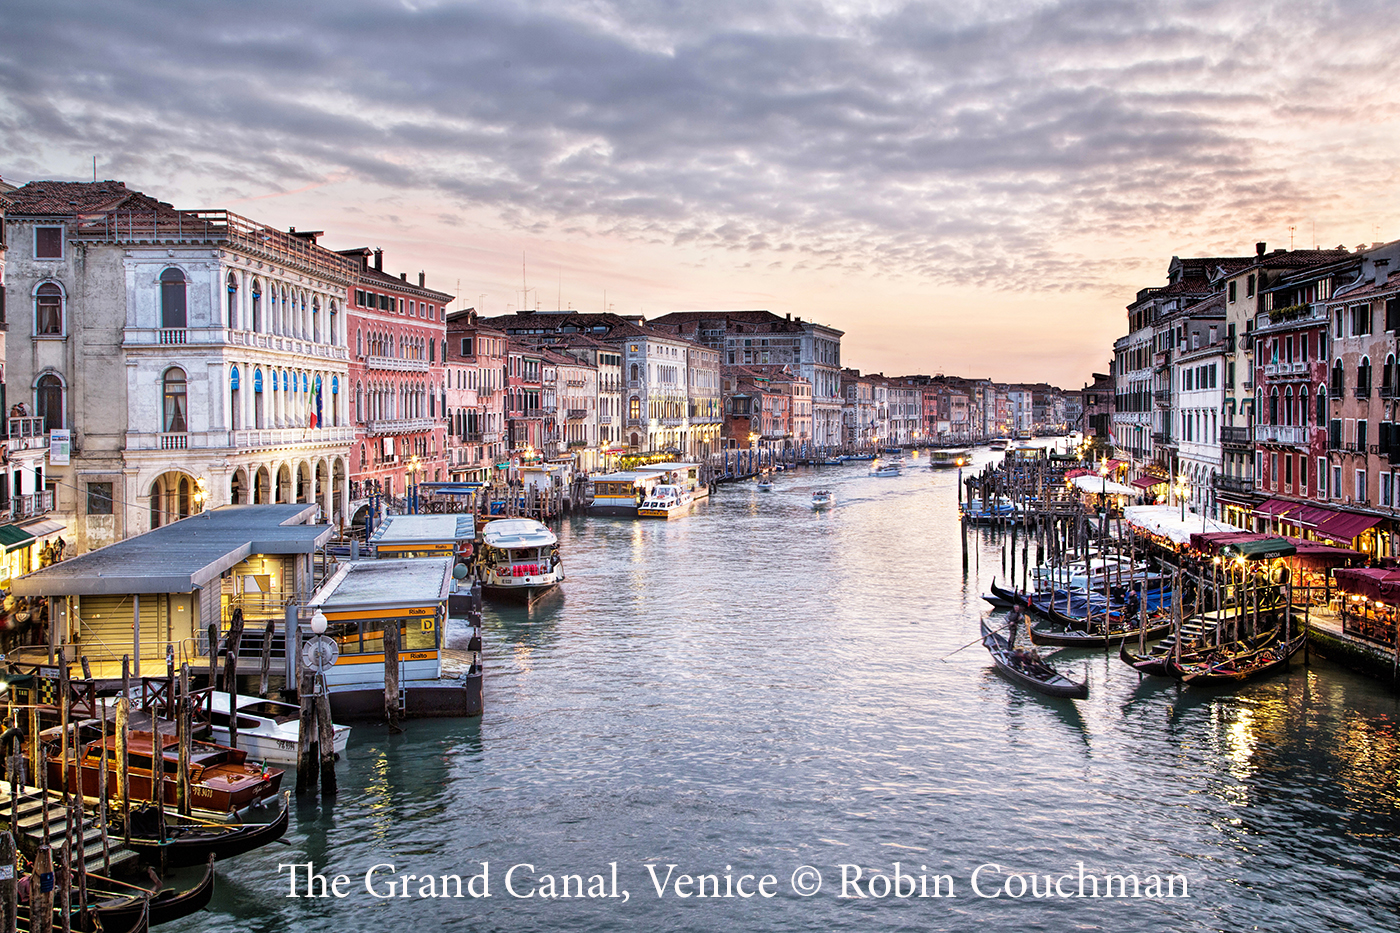 The Grand canal, Venice copyright ver.jpg